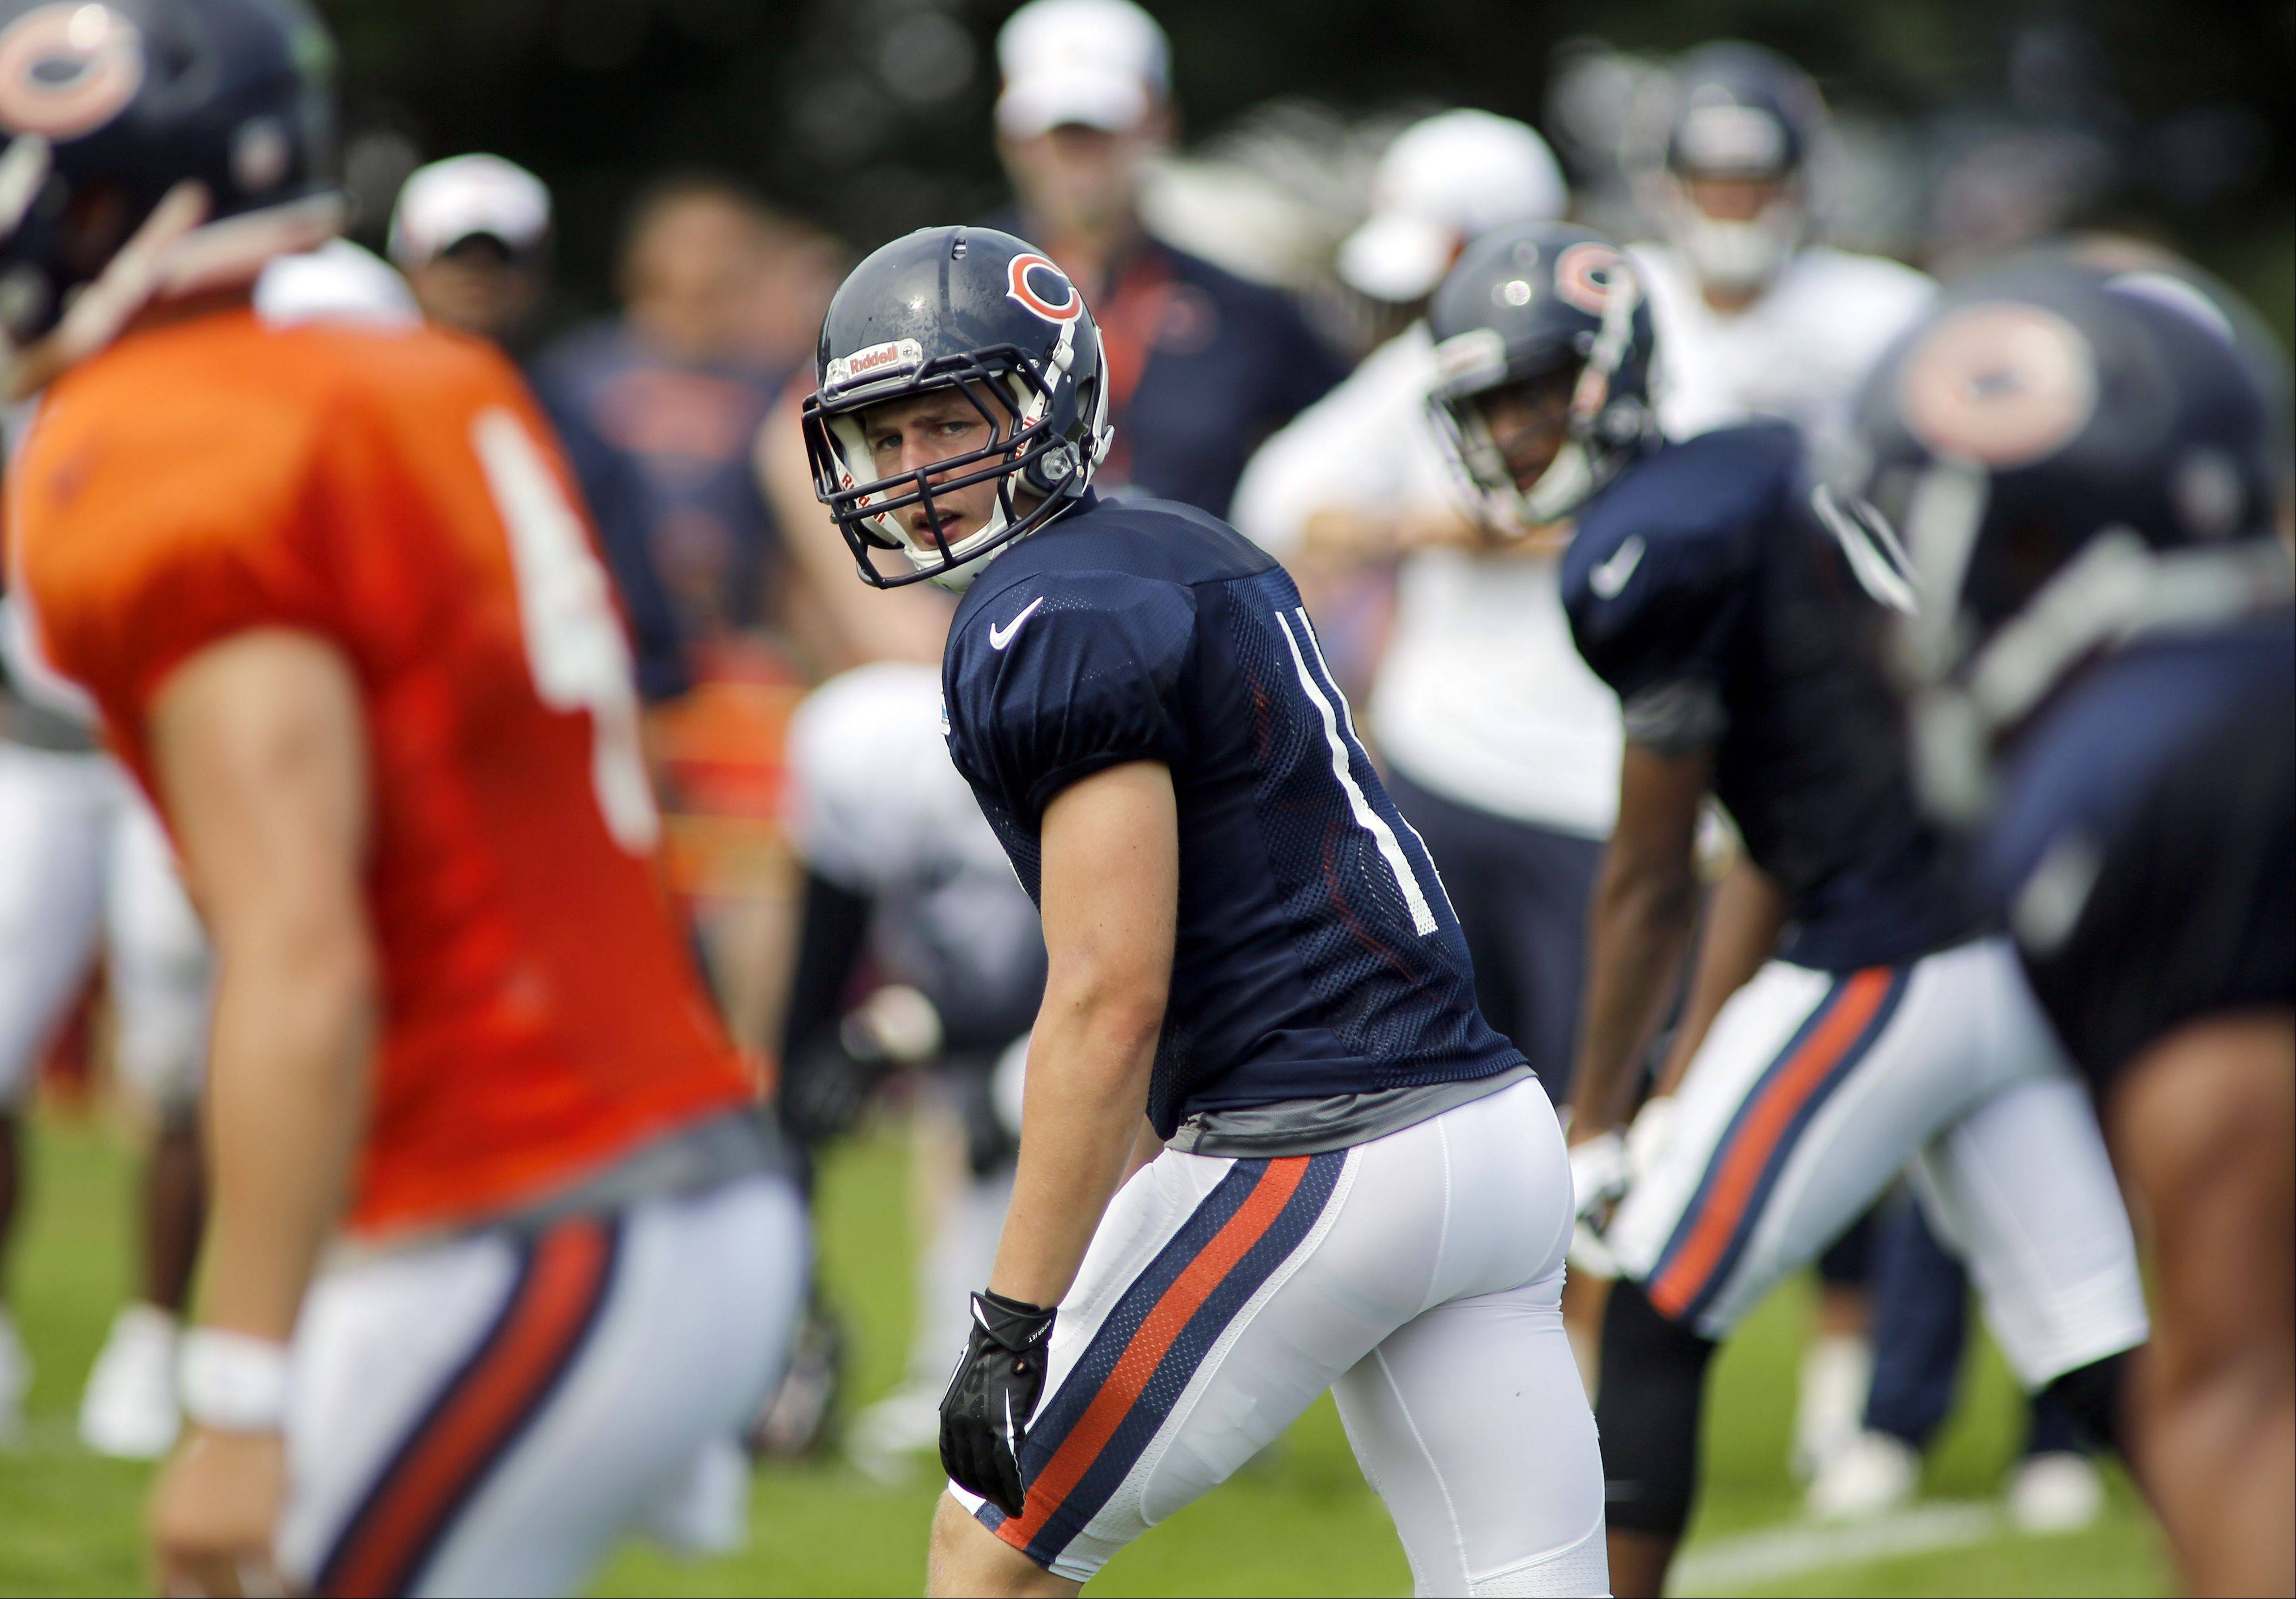 Bears wide receiver Josh Lenz (11) competes during training camp at Olivet Nazarene University in Bourbonnais.